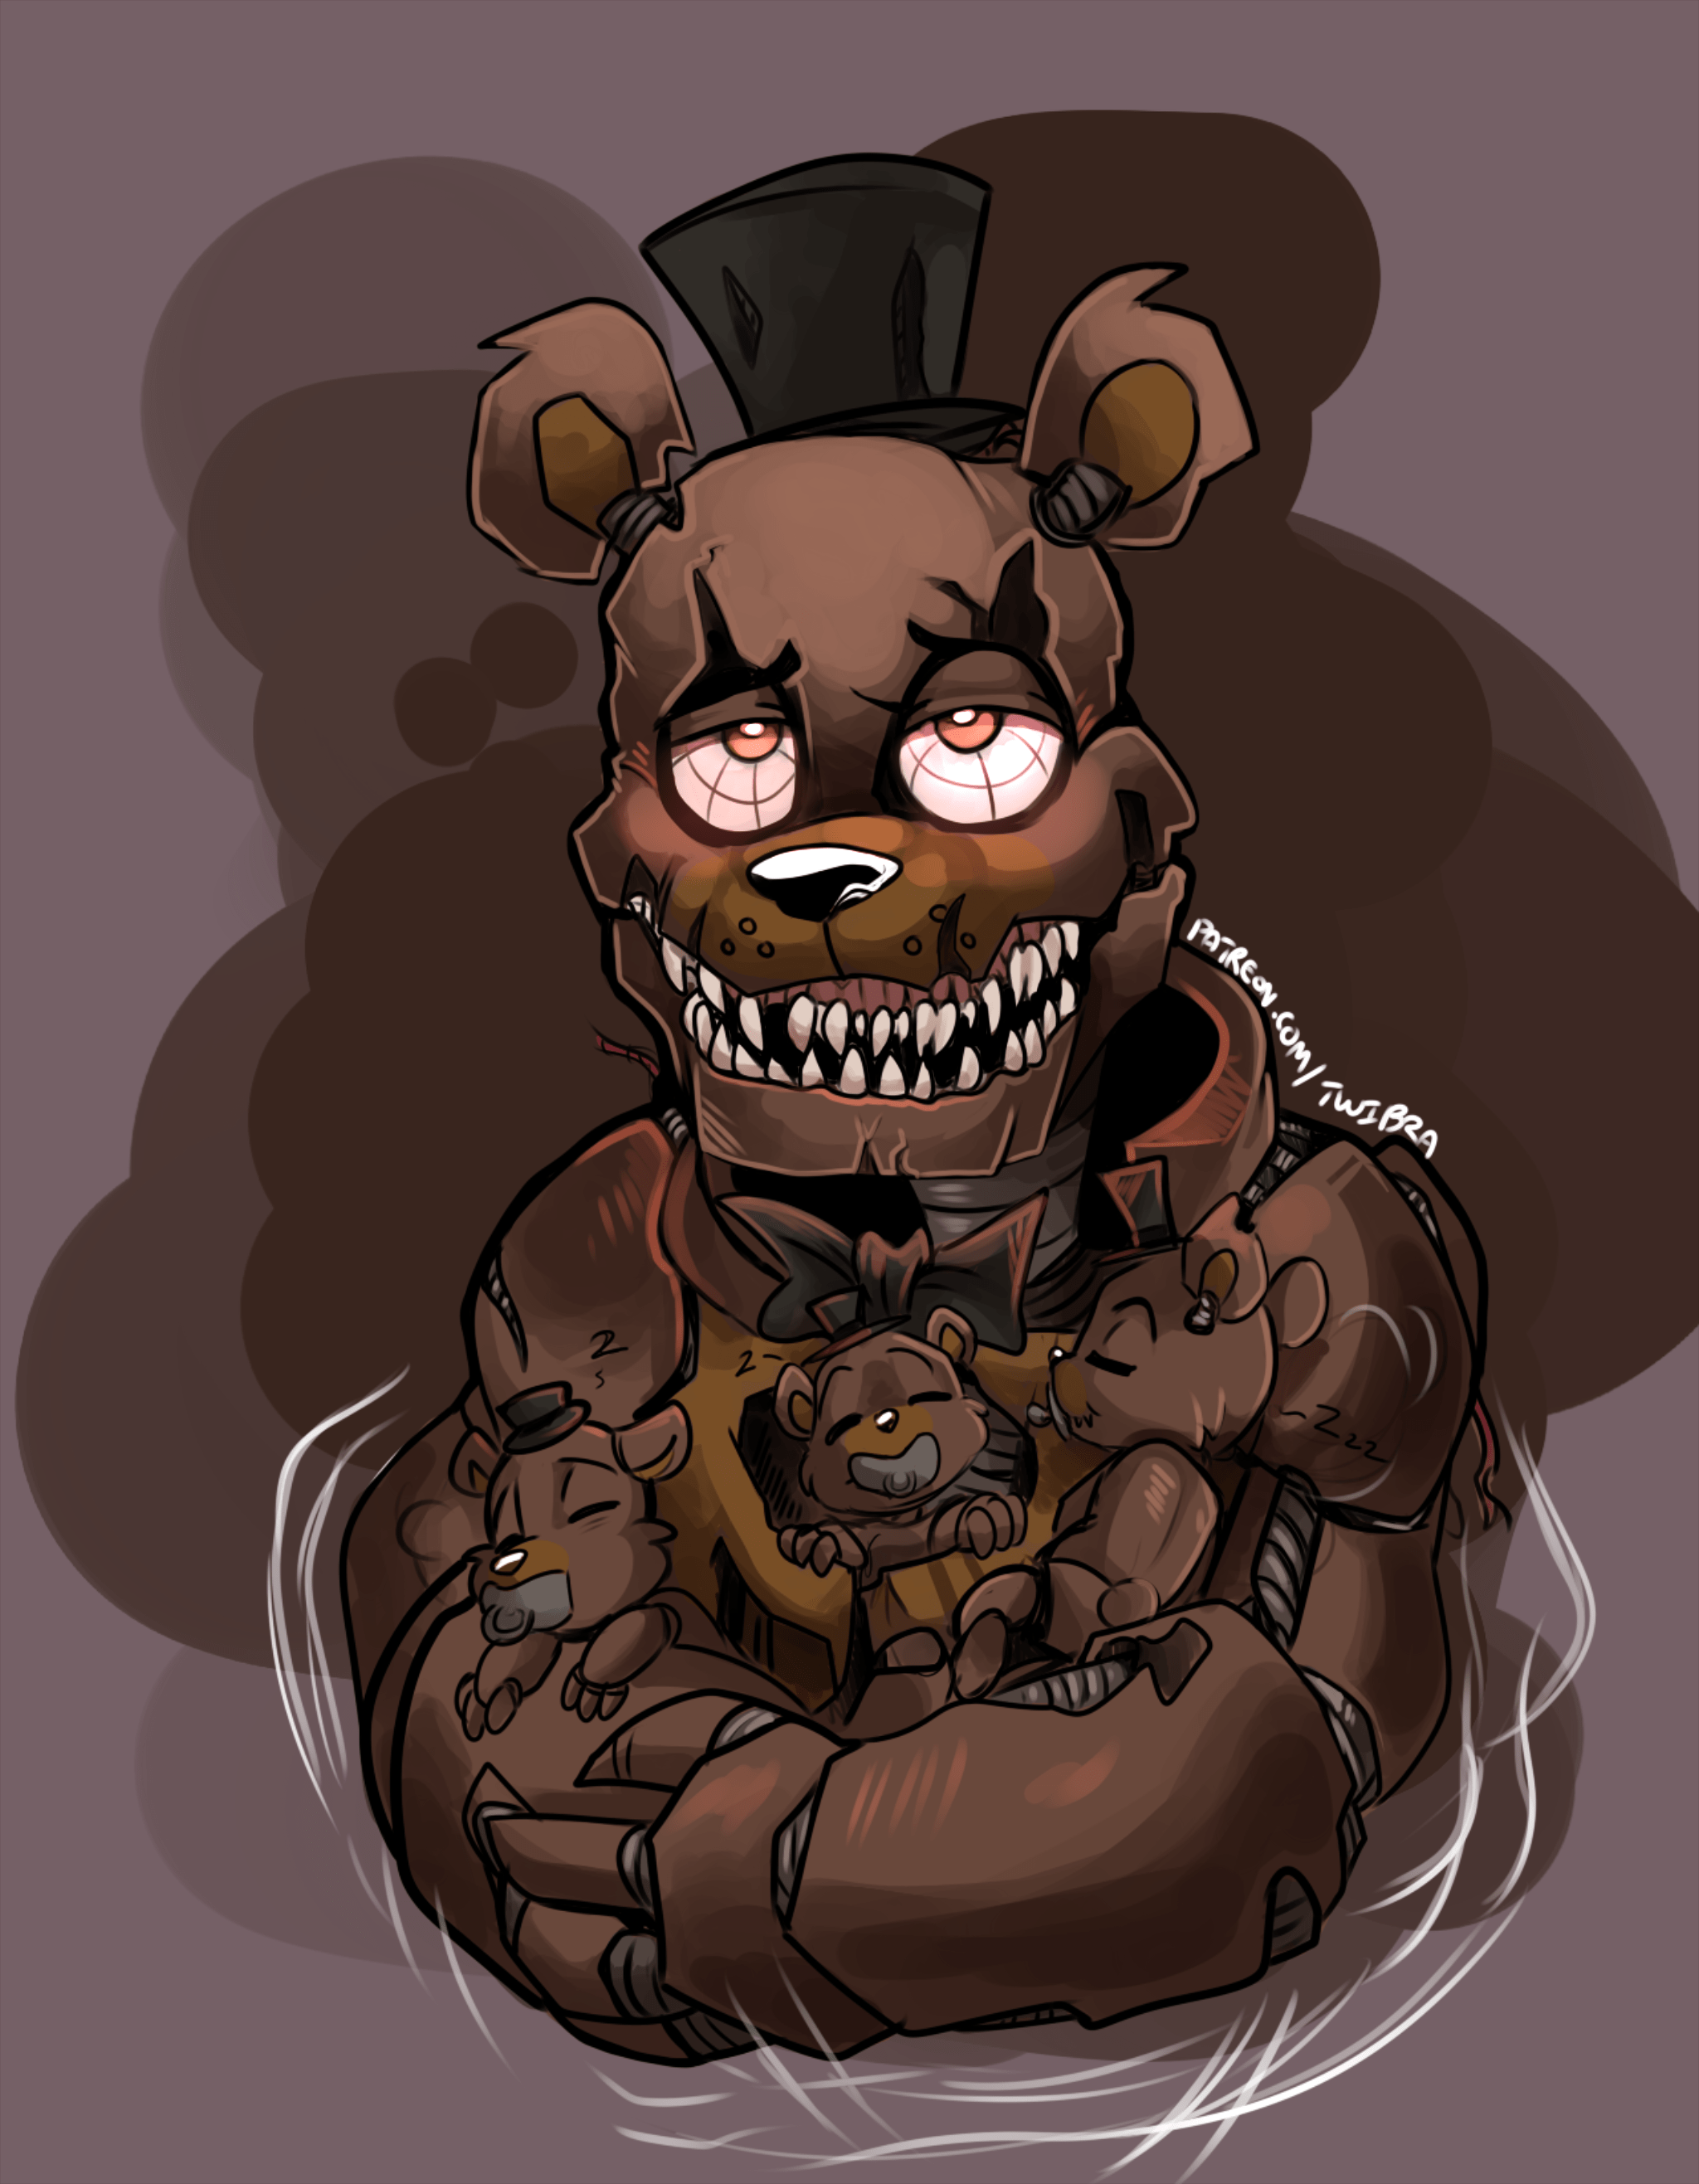 2048 Fnaf Fnaf Single Dads Nightmare Freddy By Kayla Na On Newgrounds